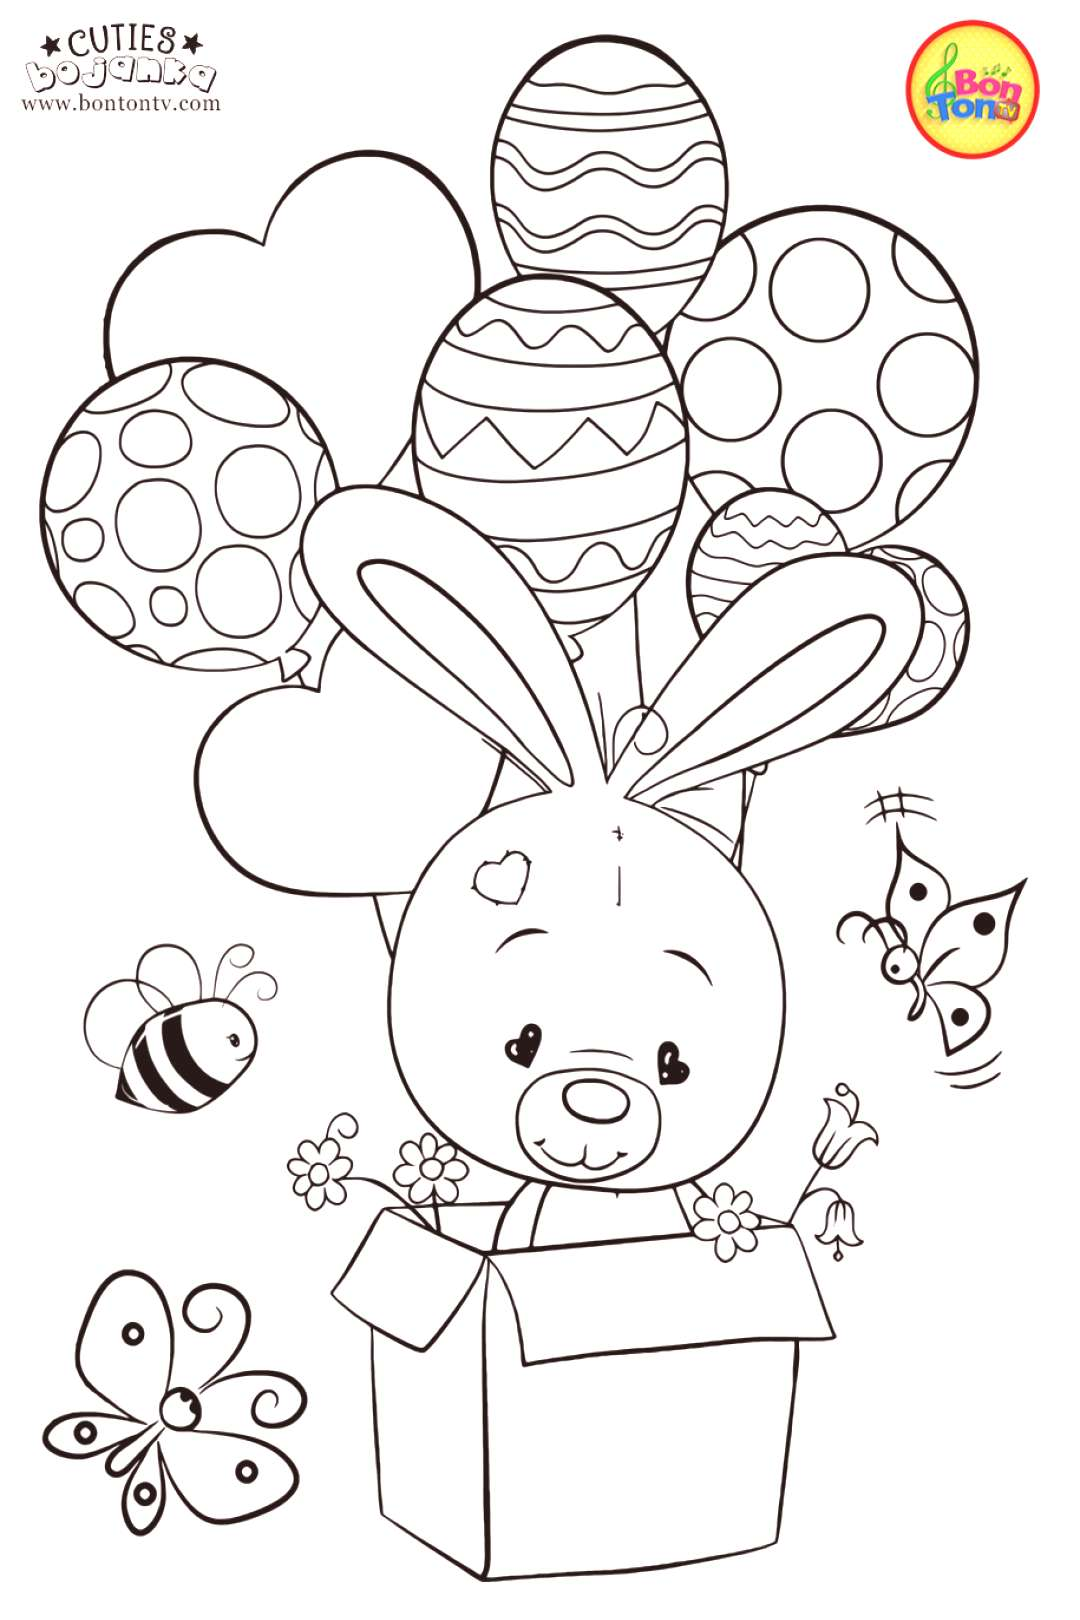 Cuties Coloring Pages : cuties, coloring, pages, Cuties, Coloring, Pages, Preschool, Printables, Books, Animal